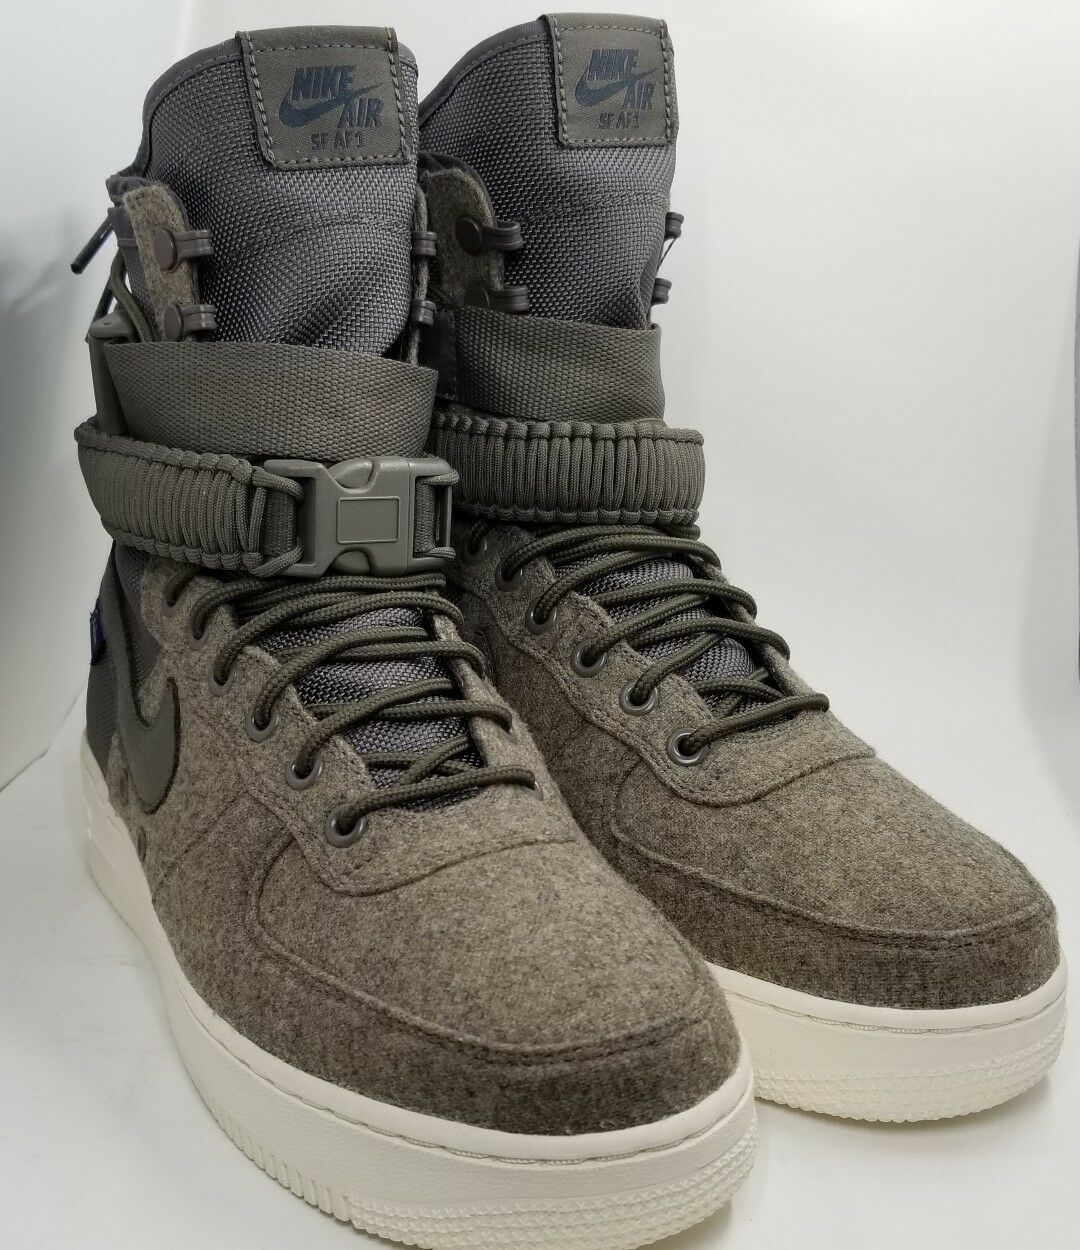 NIKE AIR FORCE 1 SF AF1 PENDLETON  ID  SPECIAL FIELD BOOTS  SIZE 8.5 AO9587-991